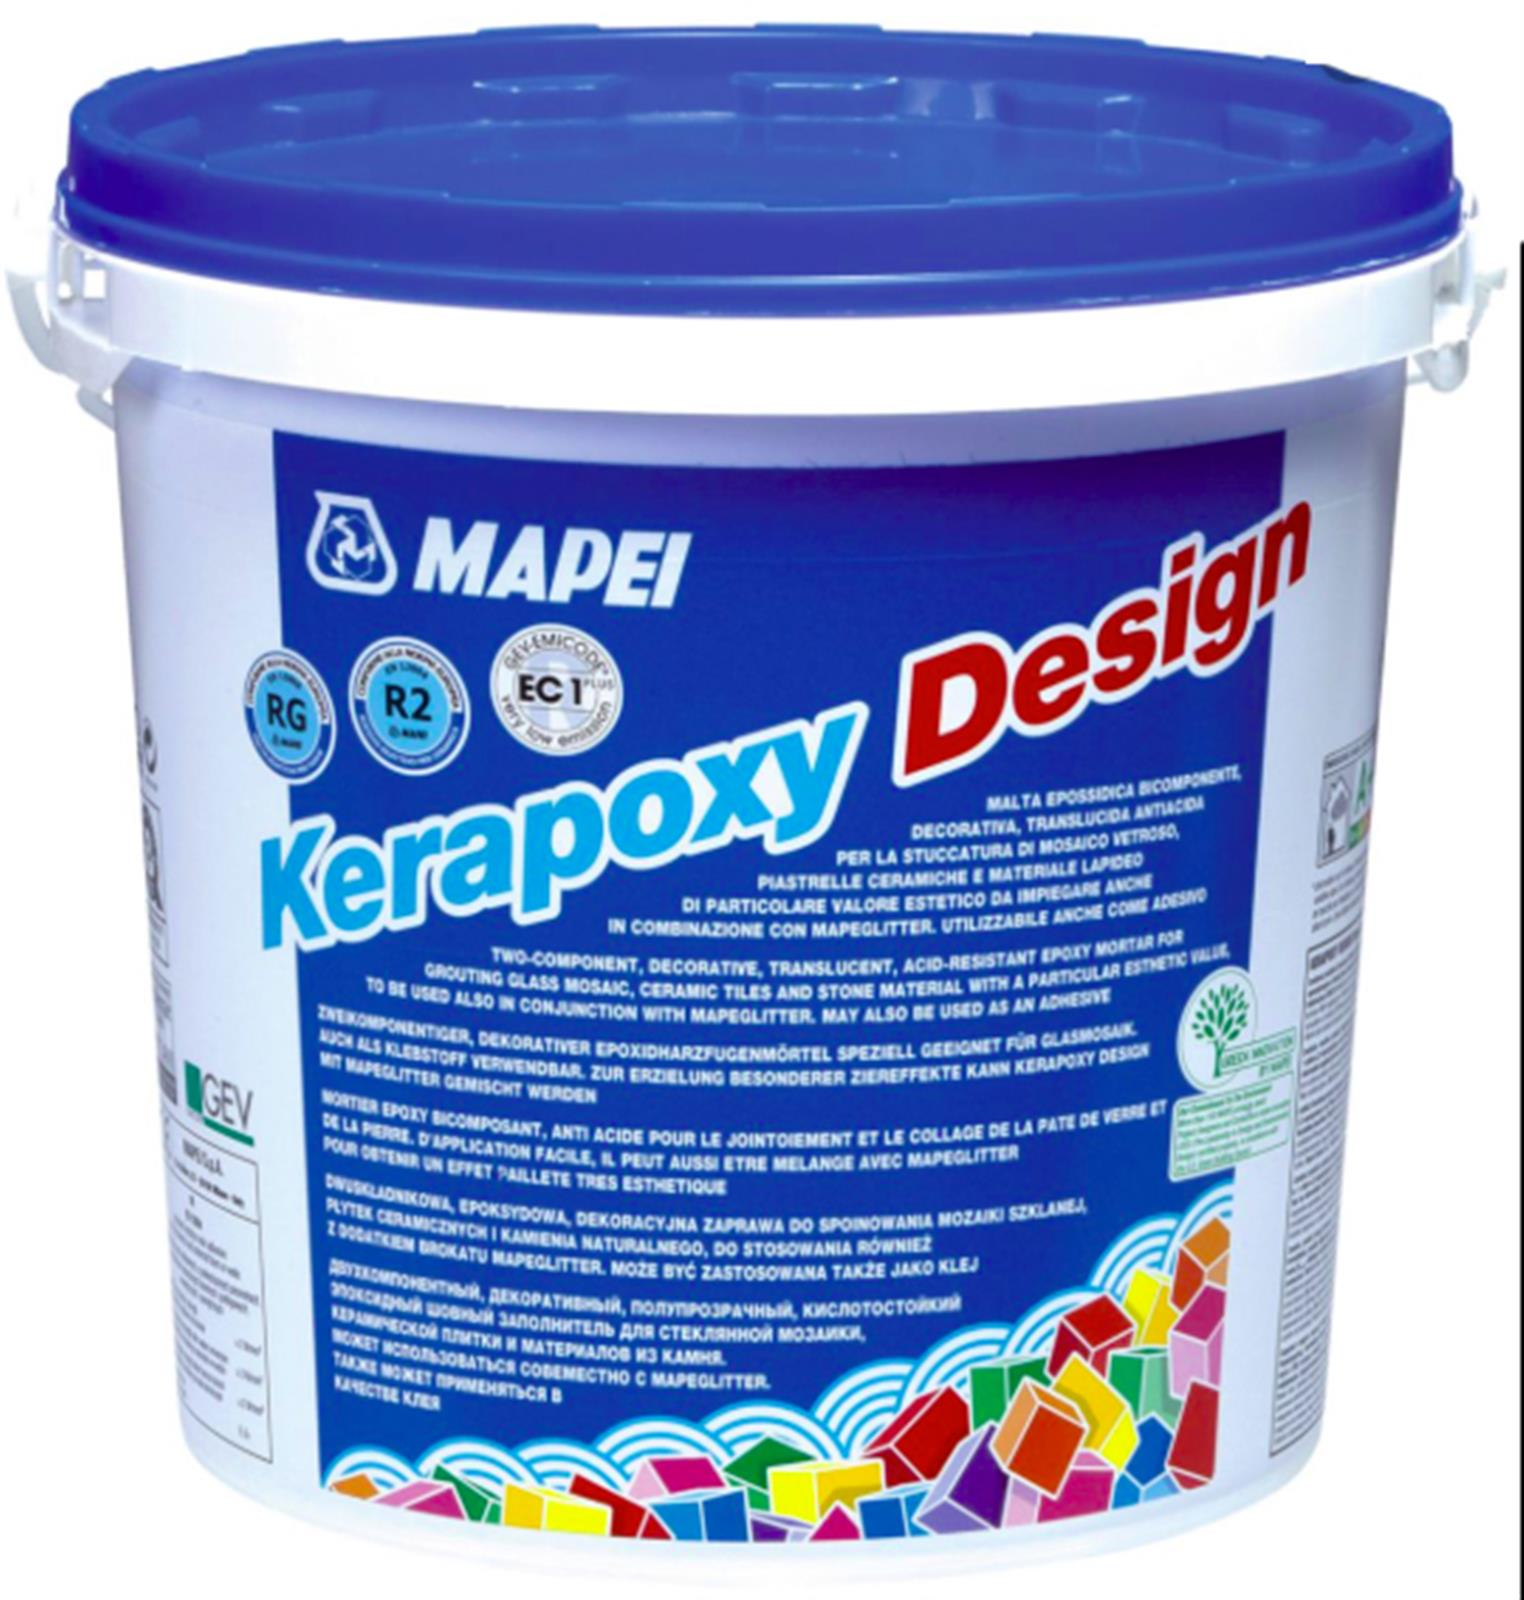 Mortier colle pour carrelage kit kerapoxy design mapei for Colle pour carrelage